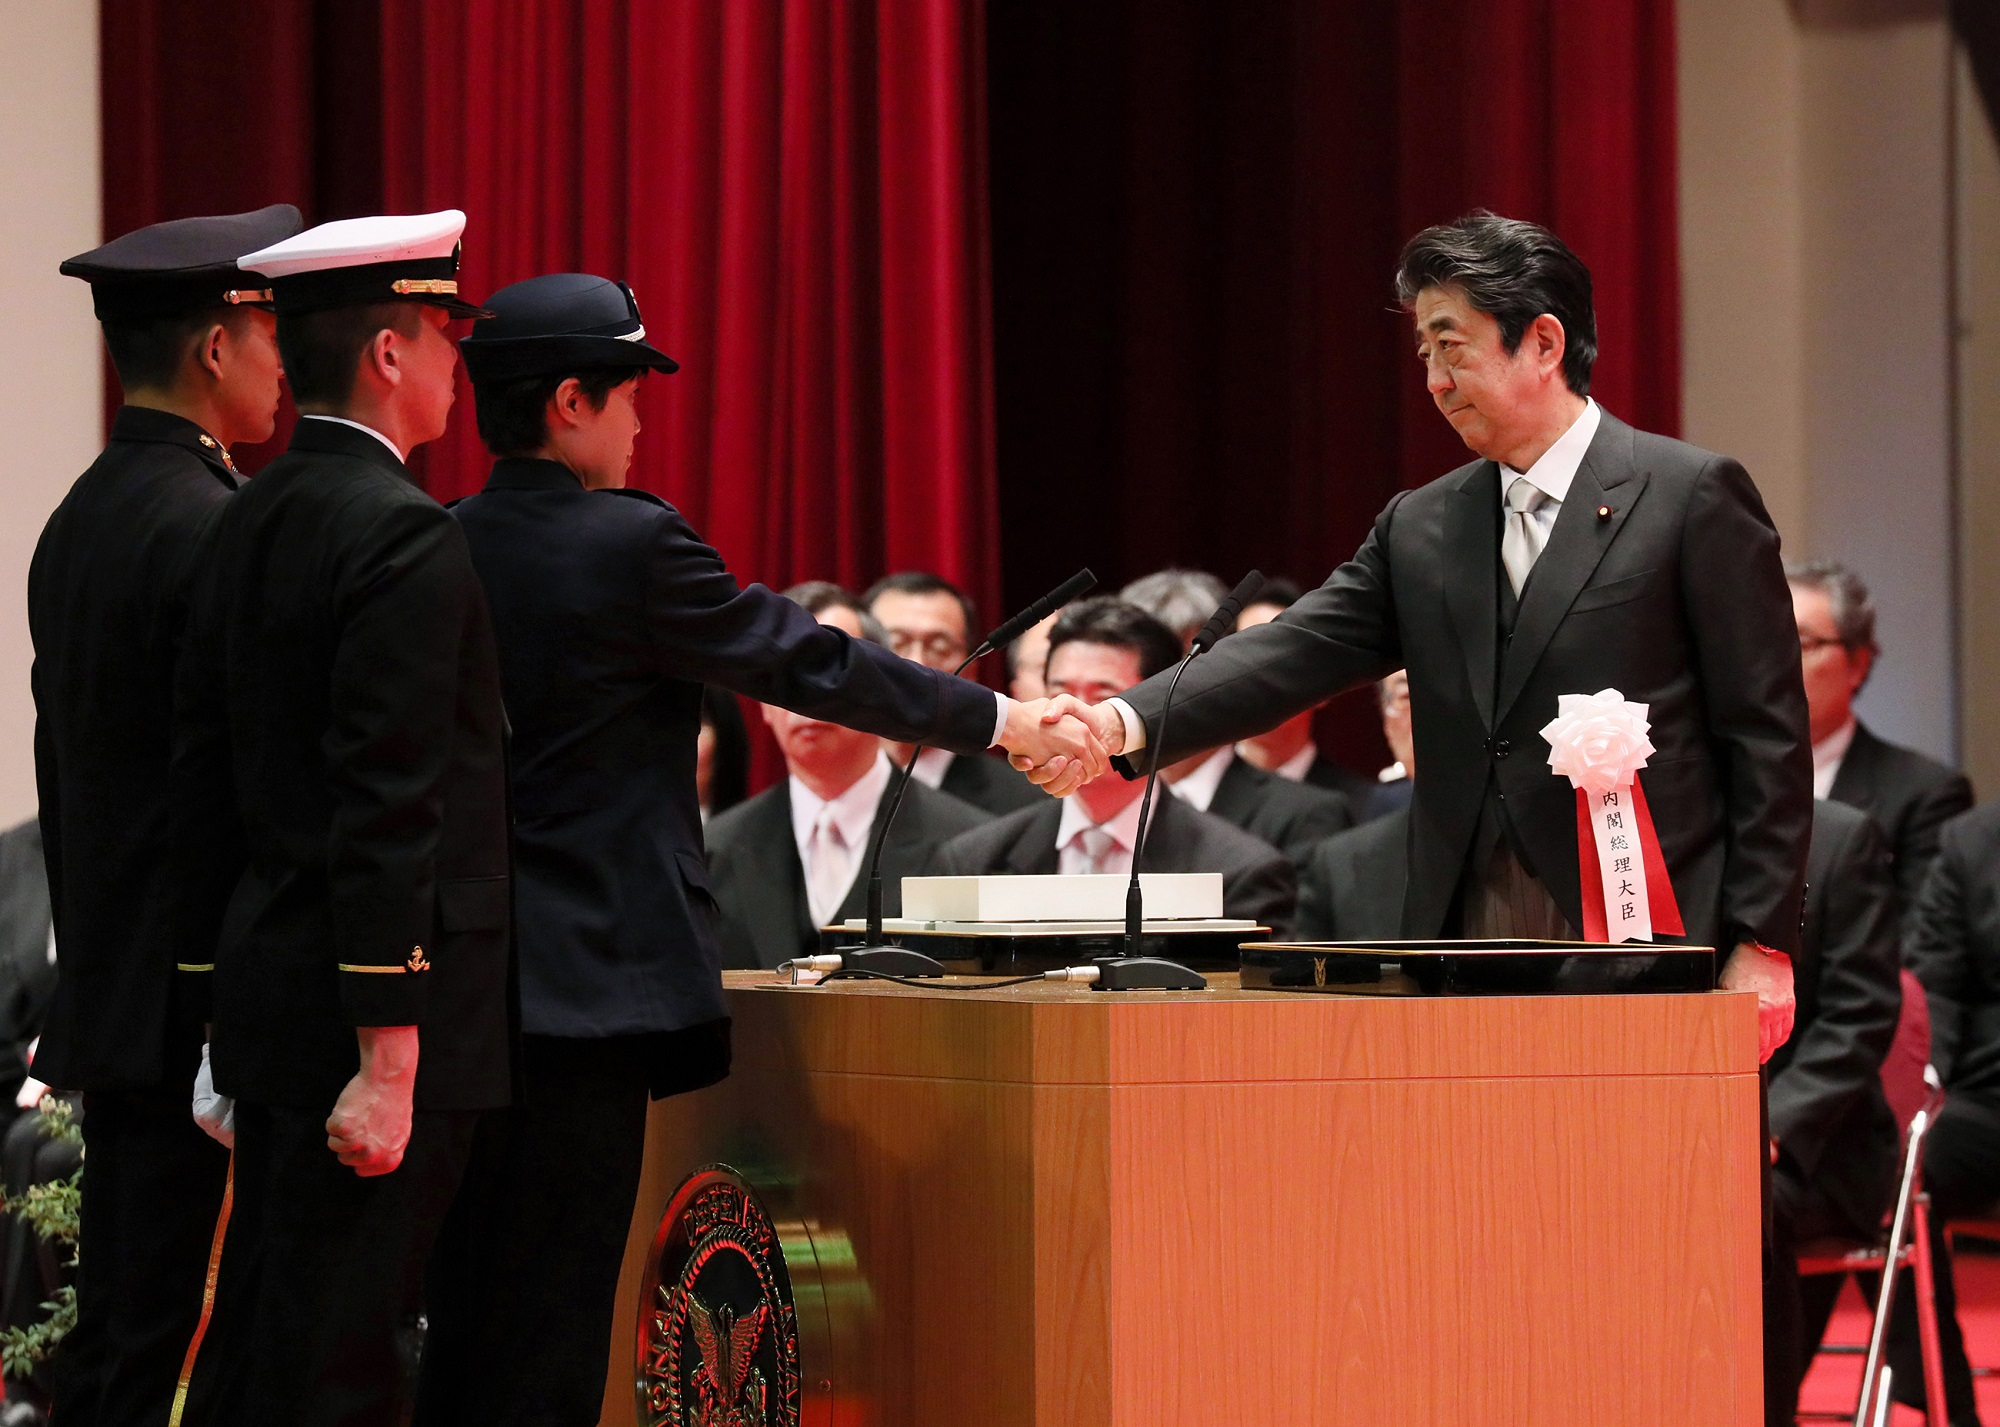 Photograph of the Prime Minister shaking hands during the oath of service ceremony